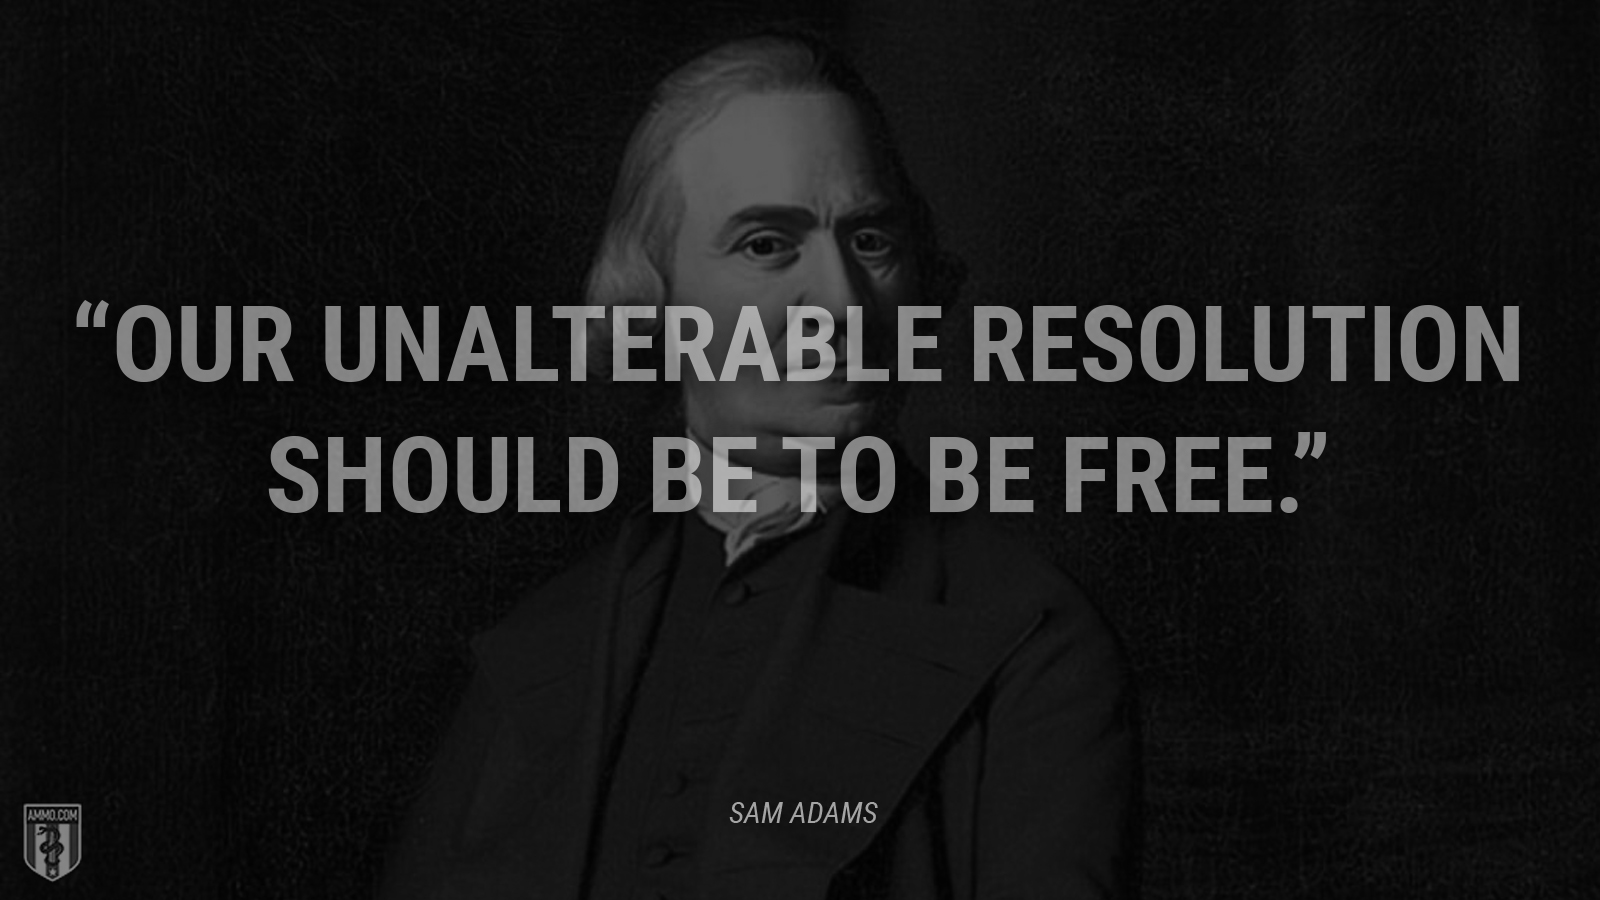 """Our unalterable resolution should be to be free."" - Sam Adams"